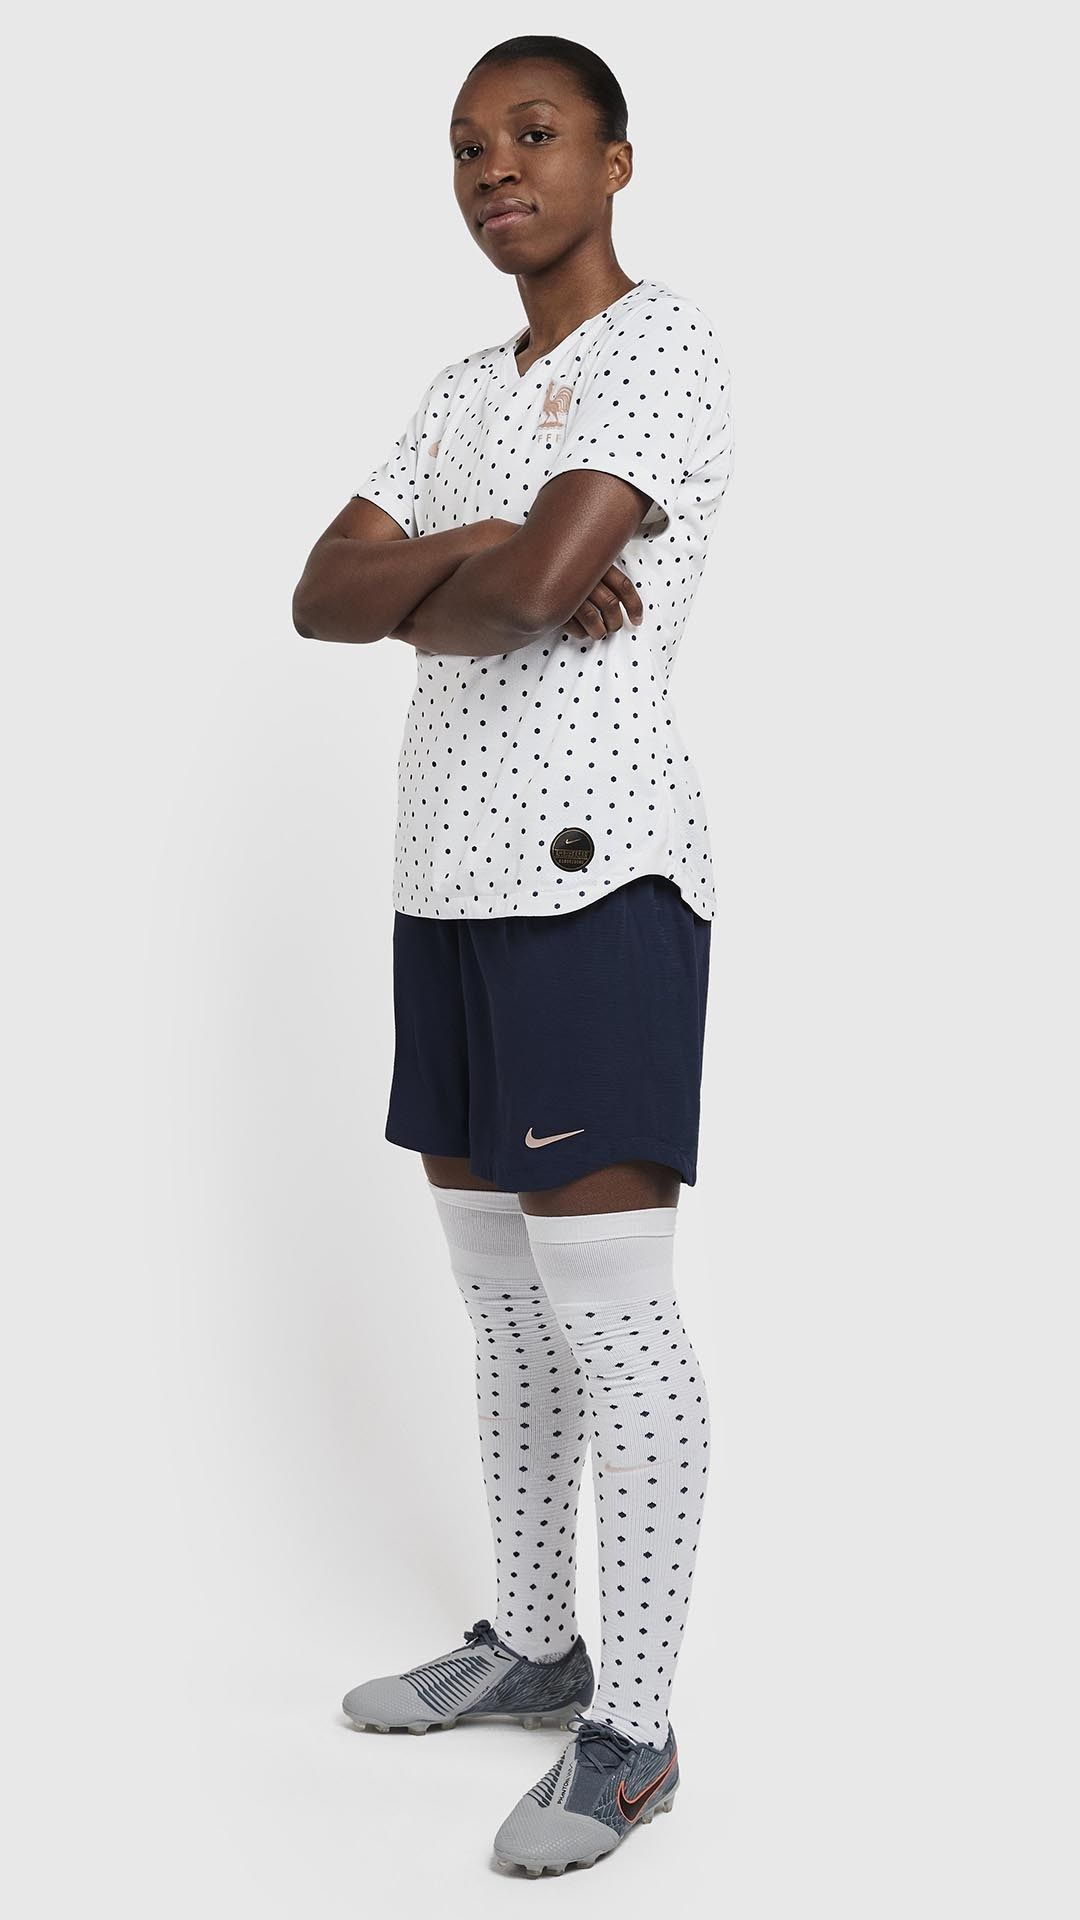 8d24f096a26 France 2019 Women's World Cup Nike Kits | Football Style | Football ...